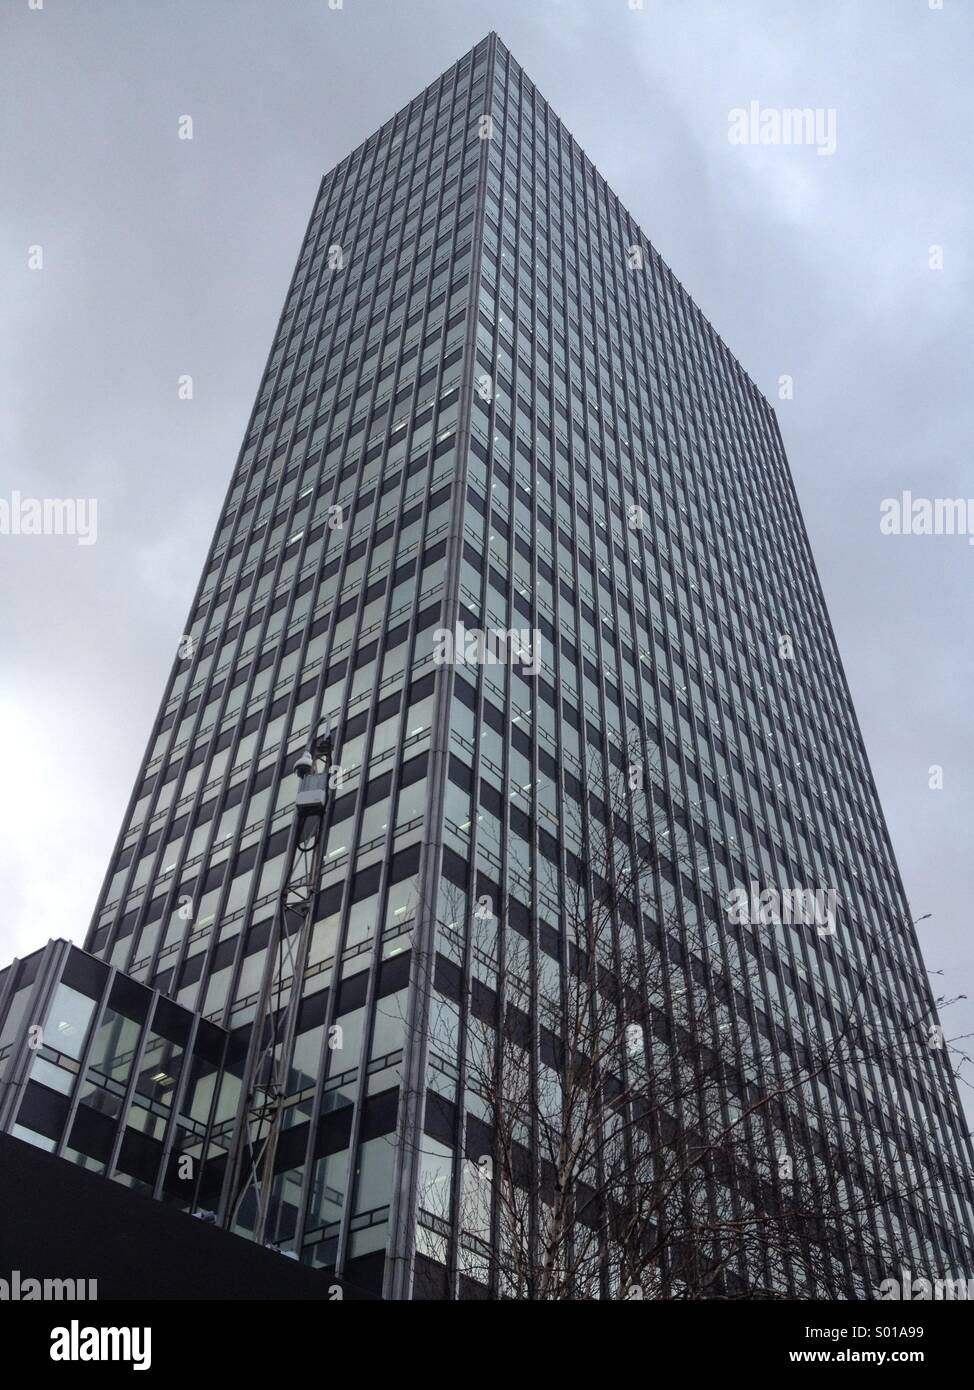 CIS building Manchester - Stock Image